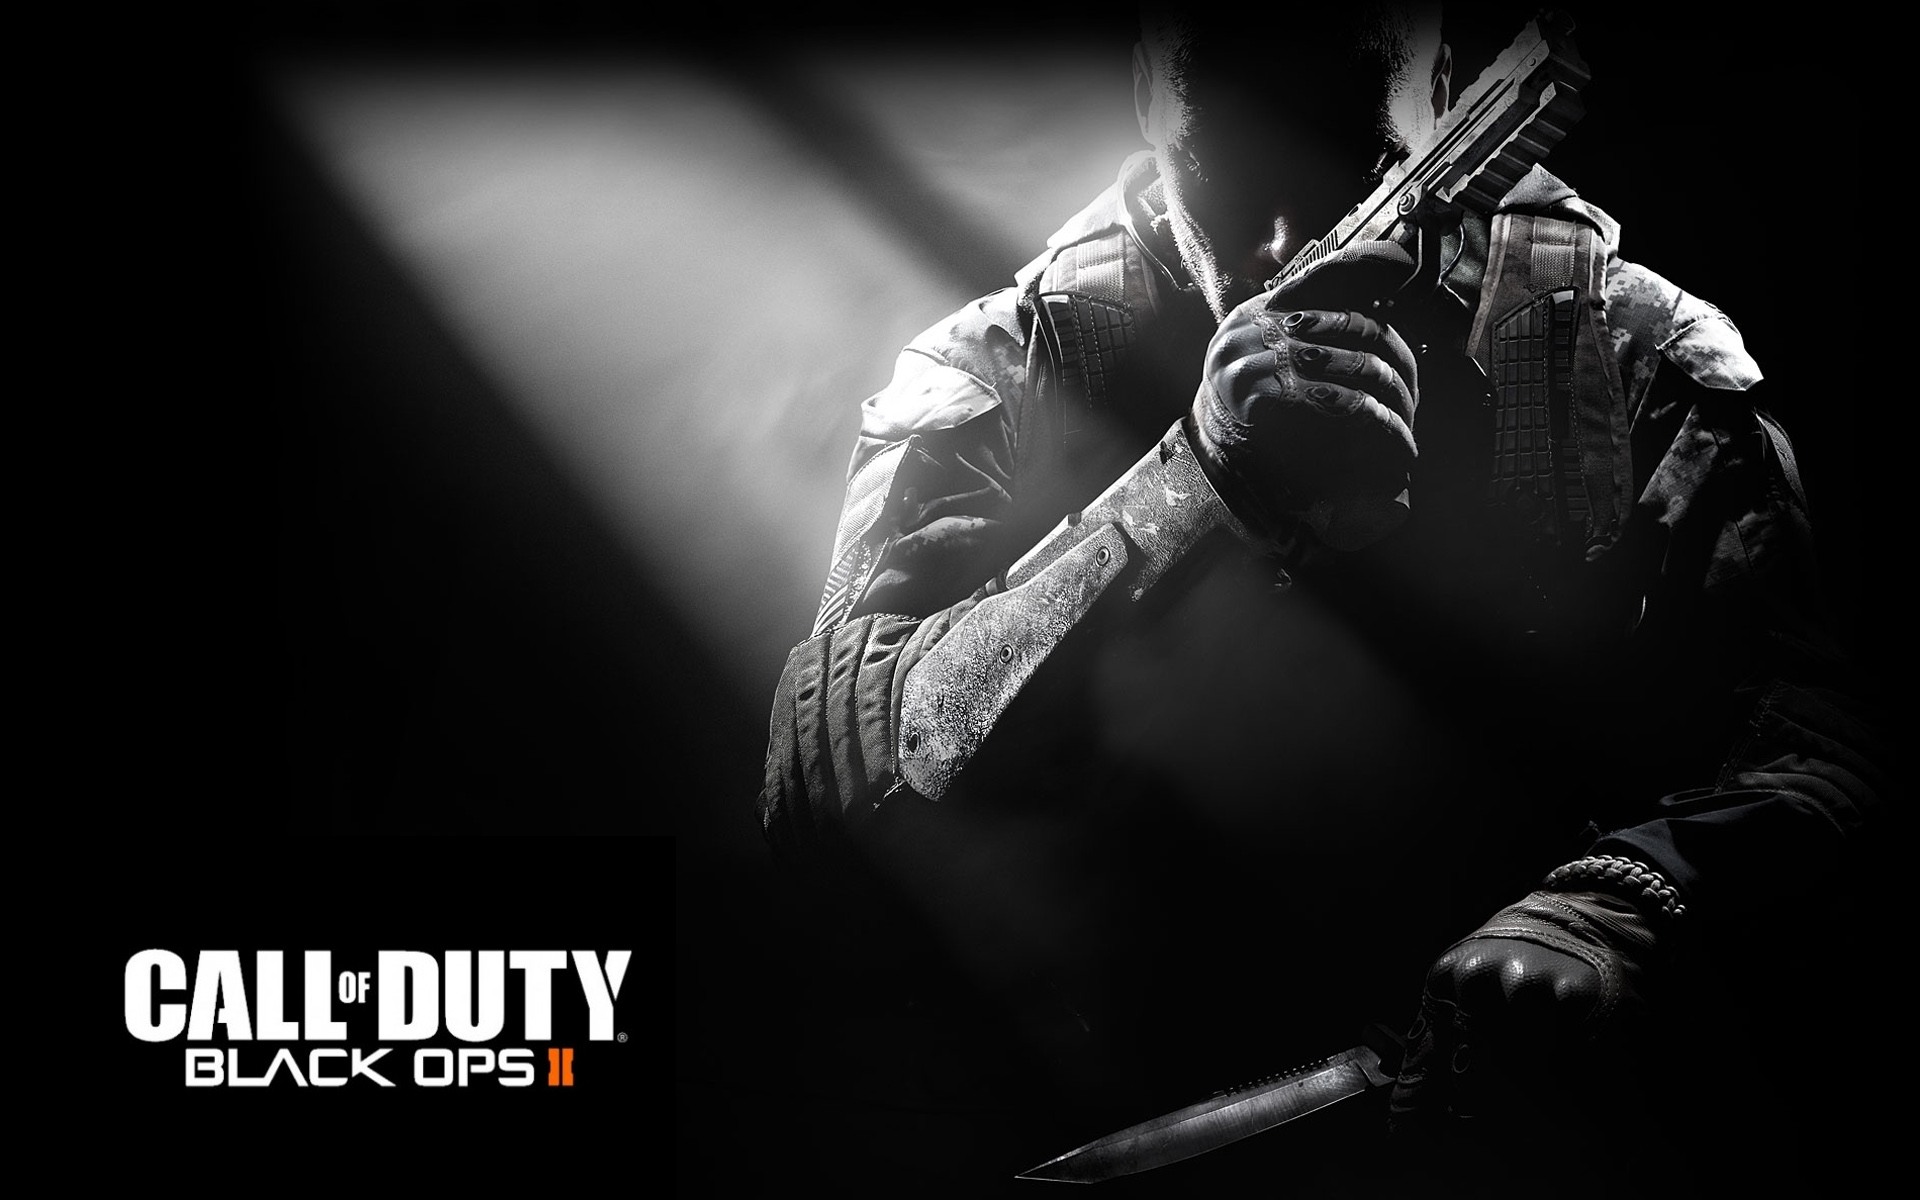 call of duty black ops 2 pc game download kickass